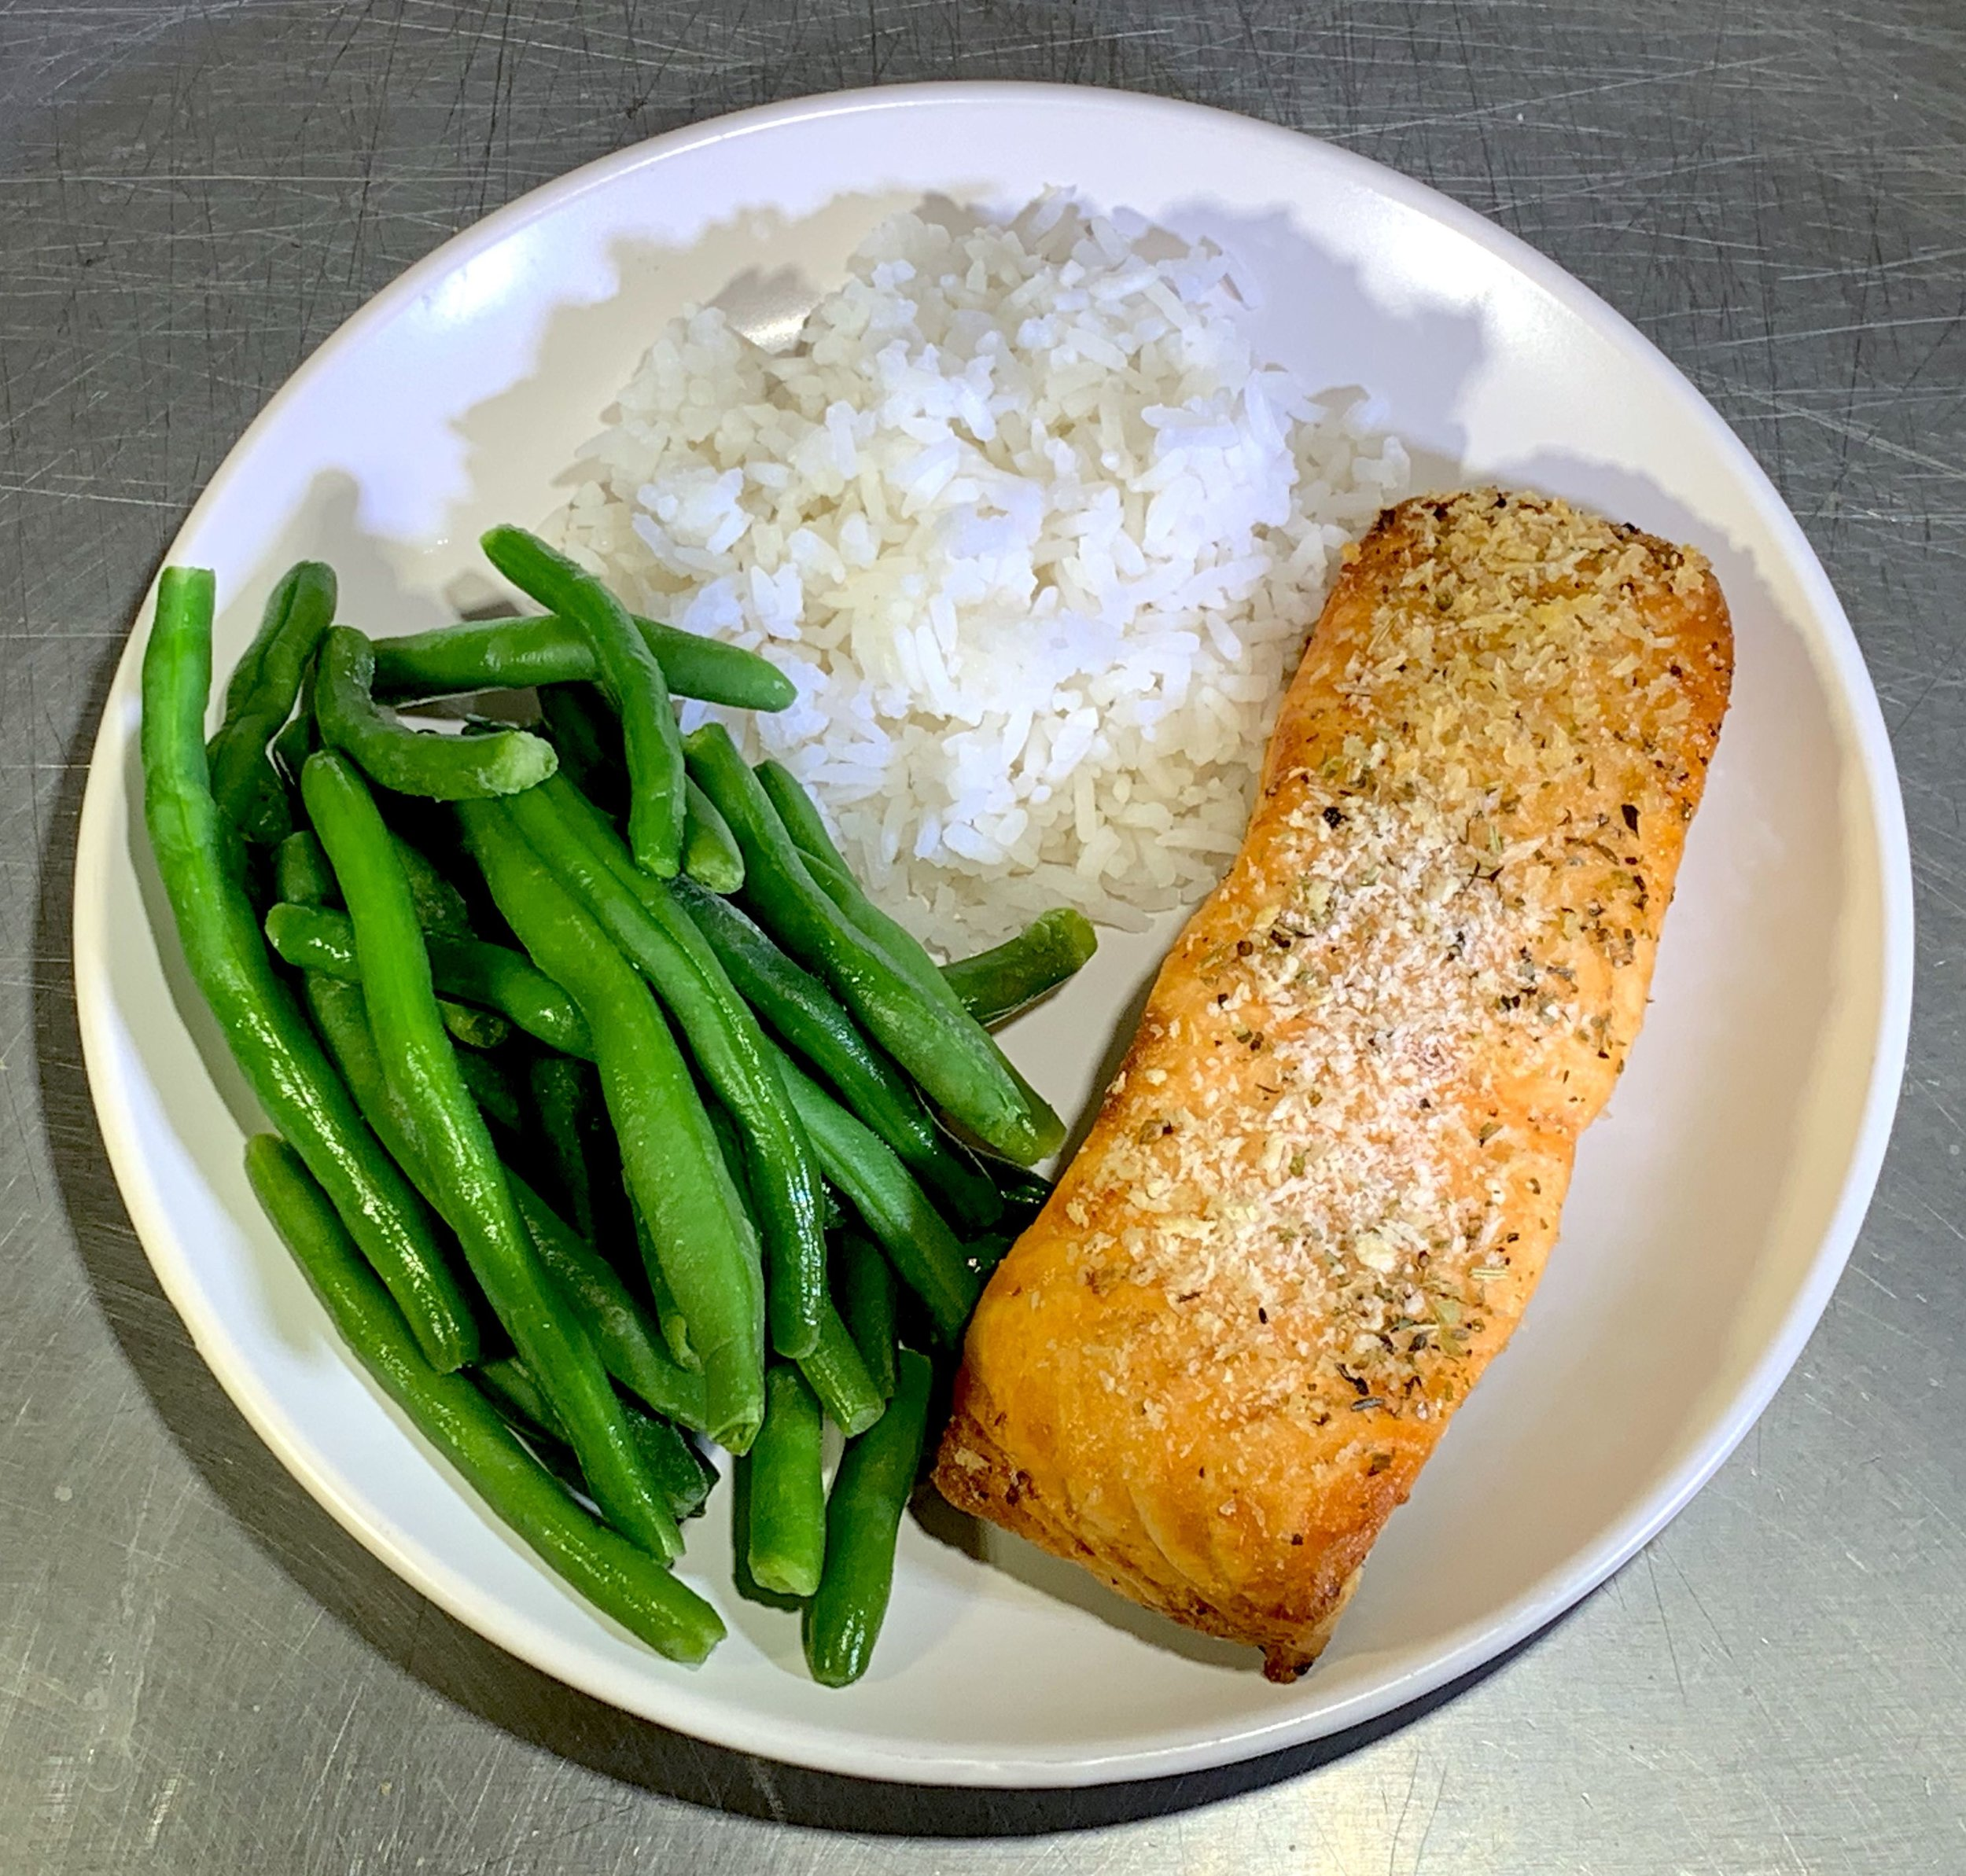 Parmesan and Herb Crusted Salmon - Calories: 428Fat: 16 gramsCarbs: 39 gramsProtein: 32 gramsContains: wheat